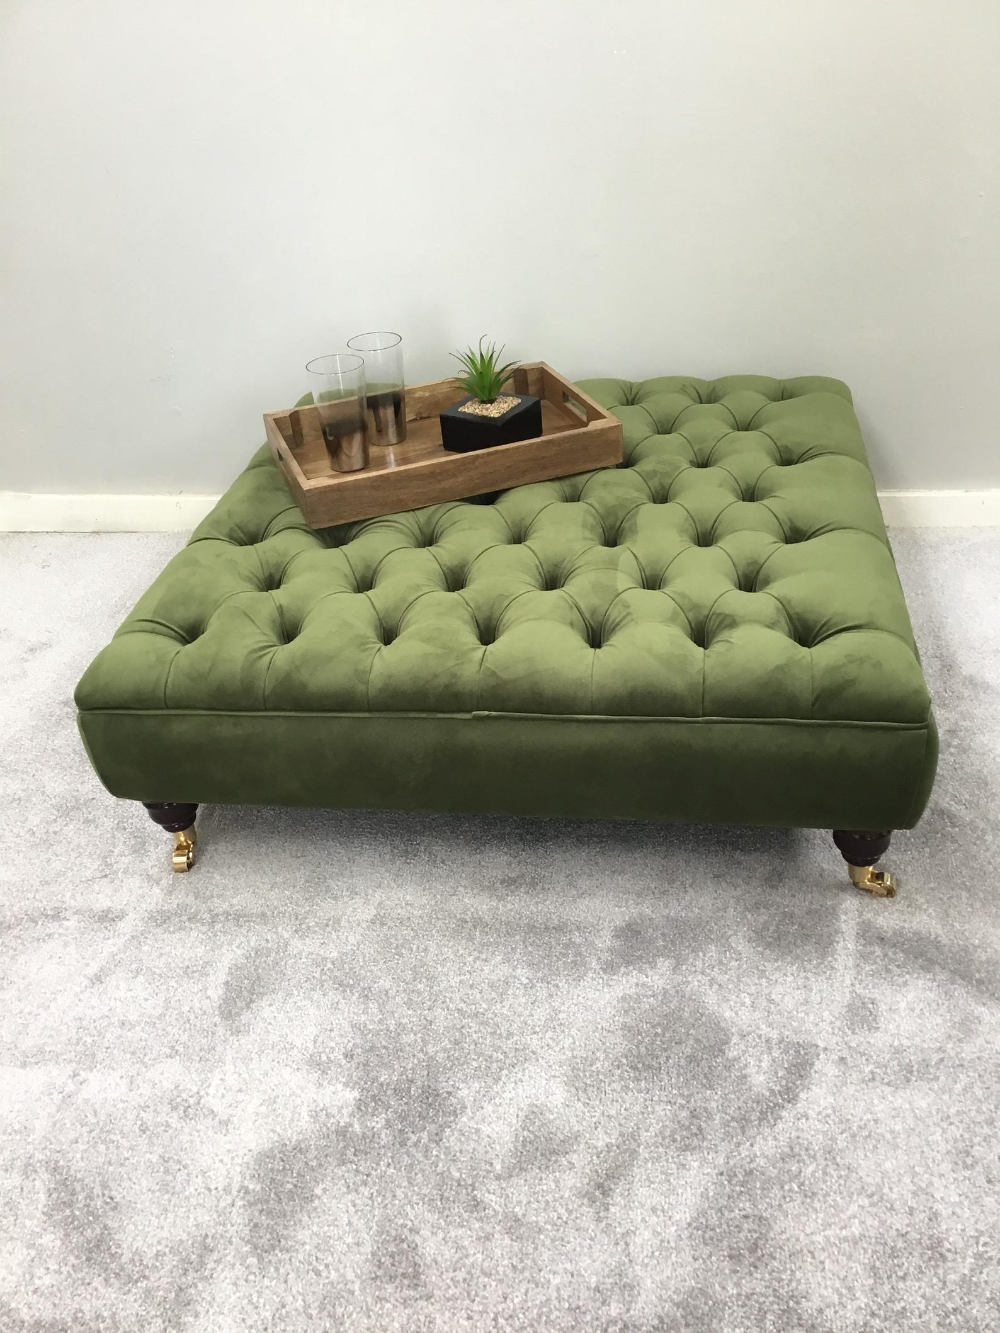 Extra Large Vine Green Footstool Coffee Table Ottoman Etsy Footstool Coffee Table Ottoman Table Large Ottoman Coffee Table [ 1333 x 1000 Pixel ]